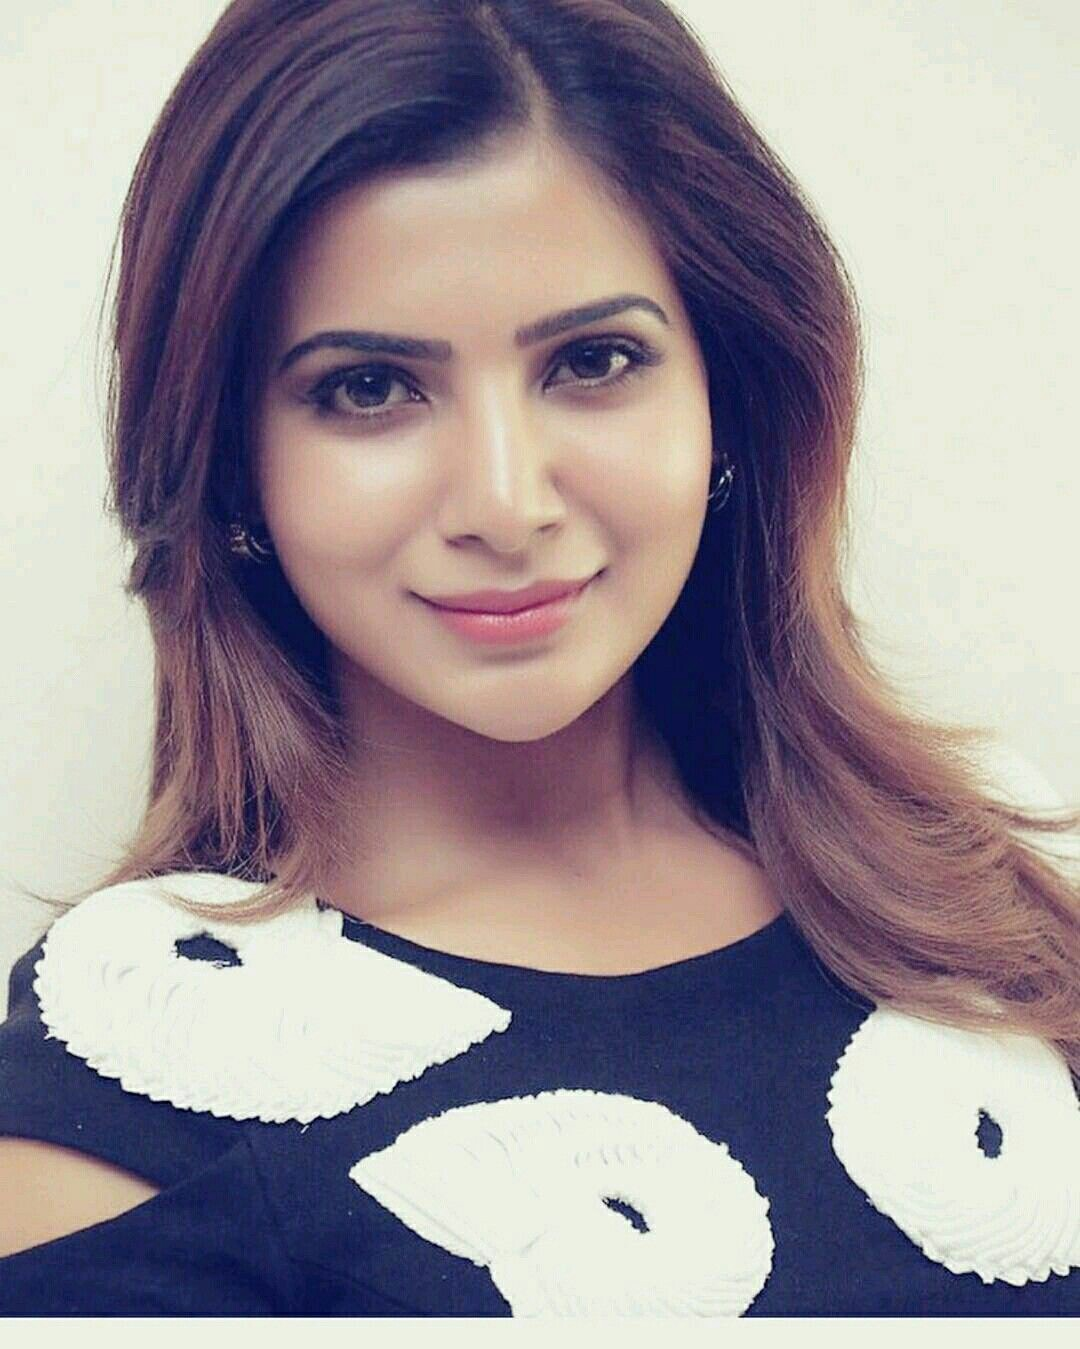 Samantha photos old collection 1 | Picture 2